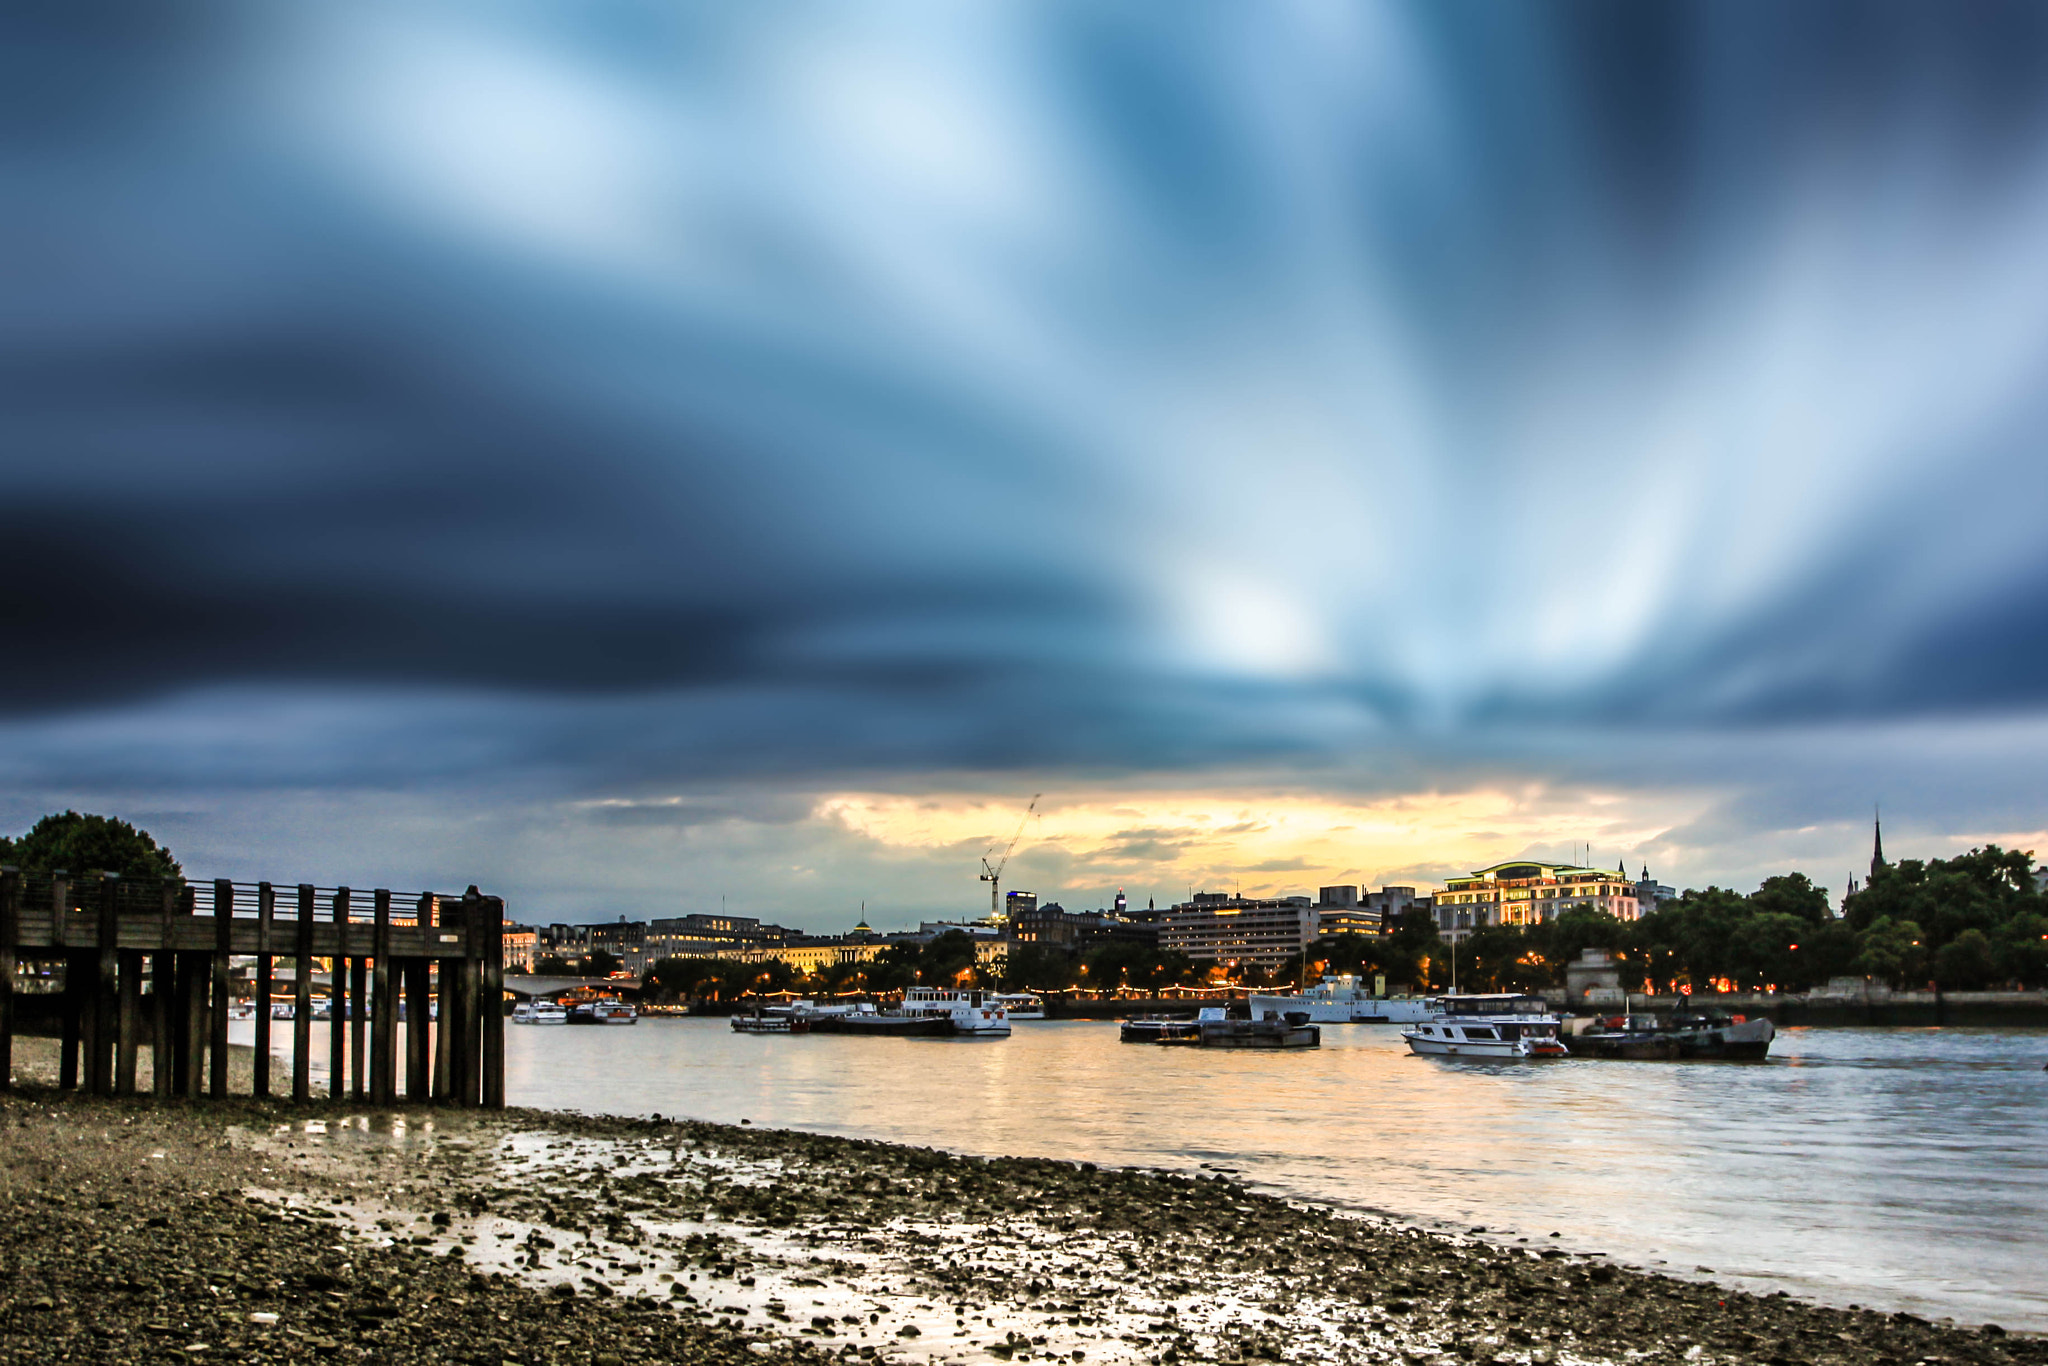 Photograph Storm Approaching London by David Turney on 500px